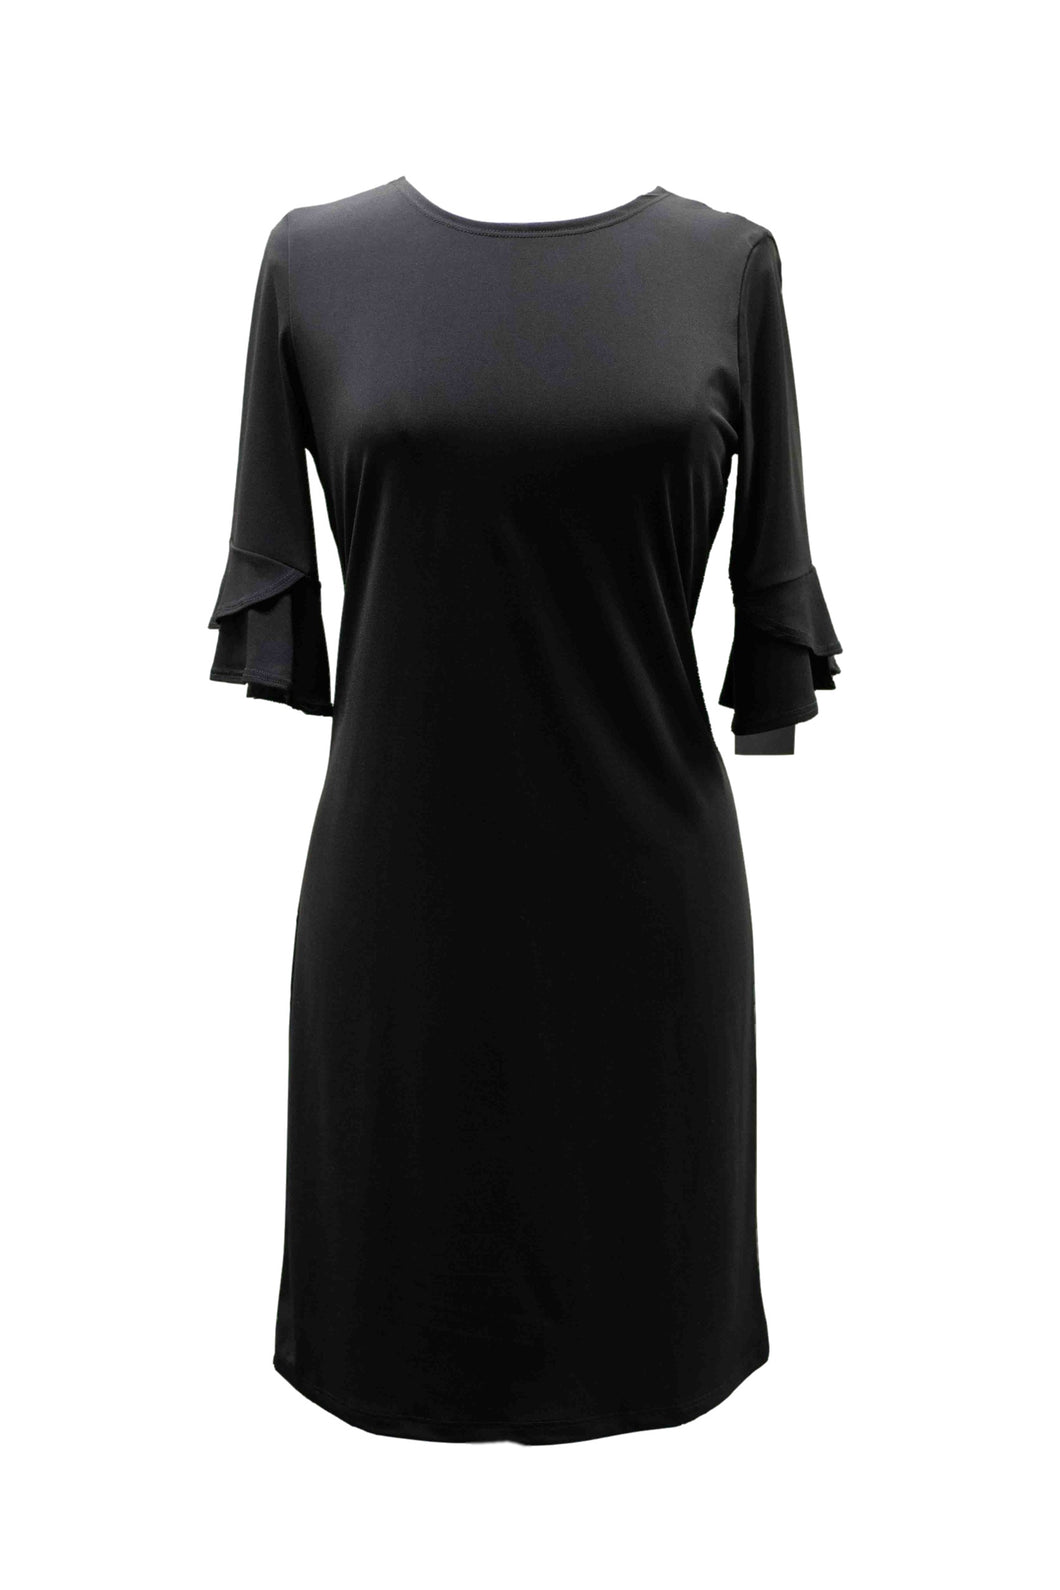 Black Knit Dress with Ruffle Sleeve Detailing